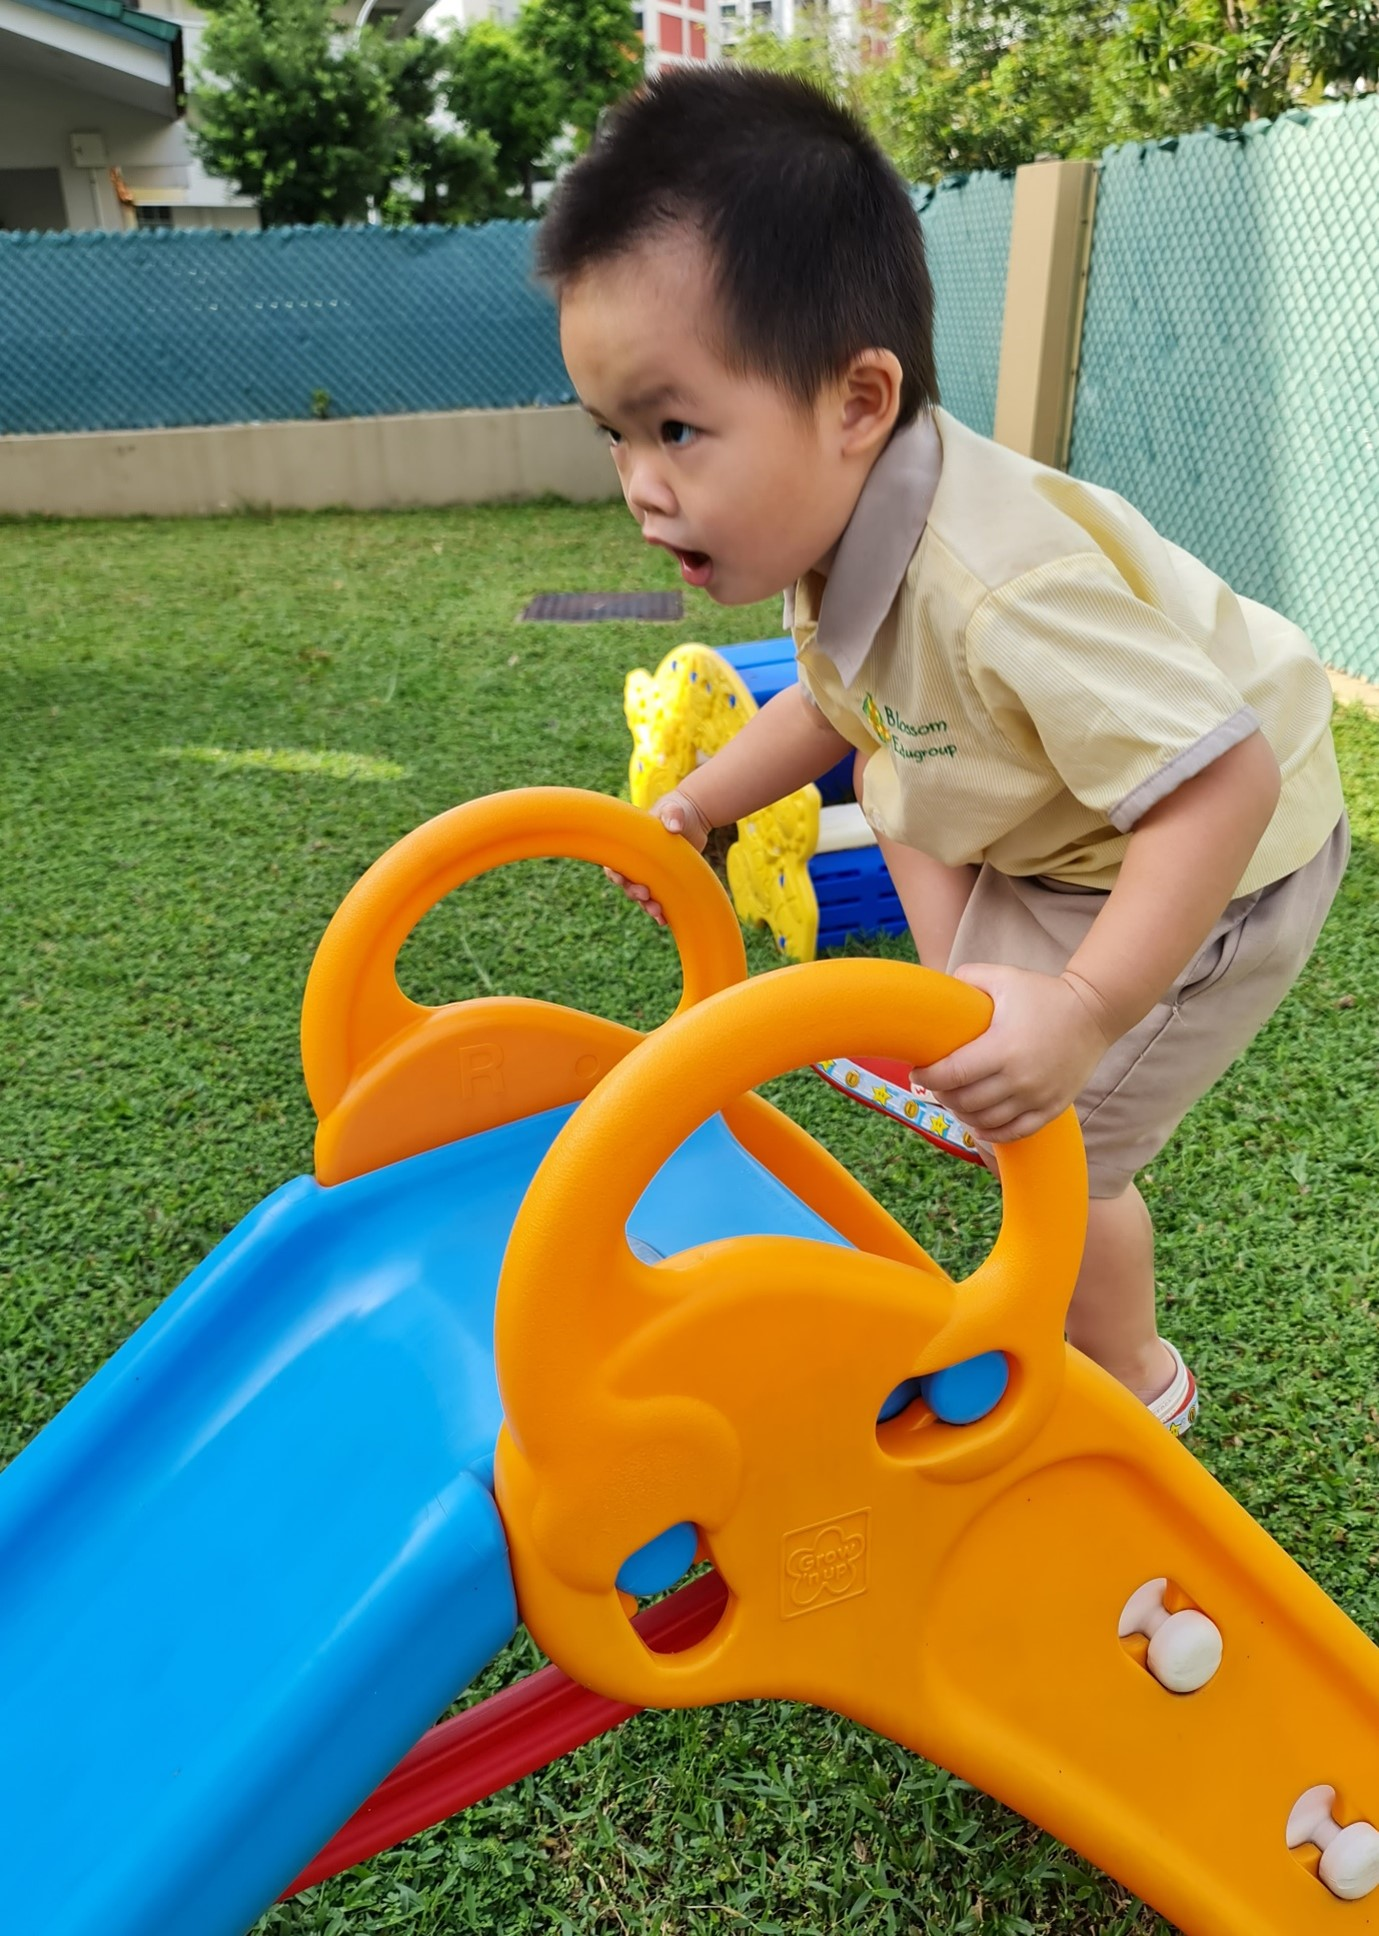 Playgroup physical play